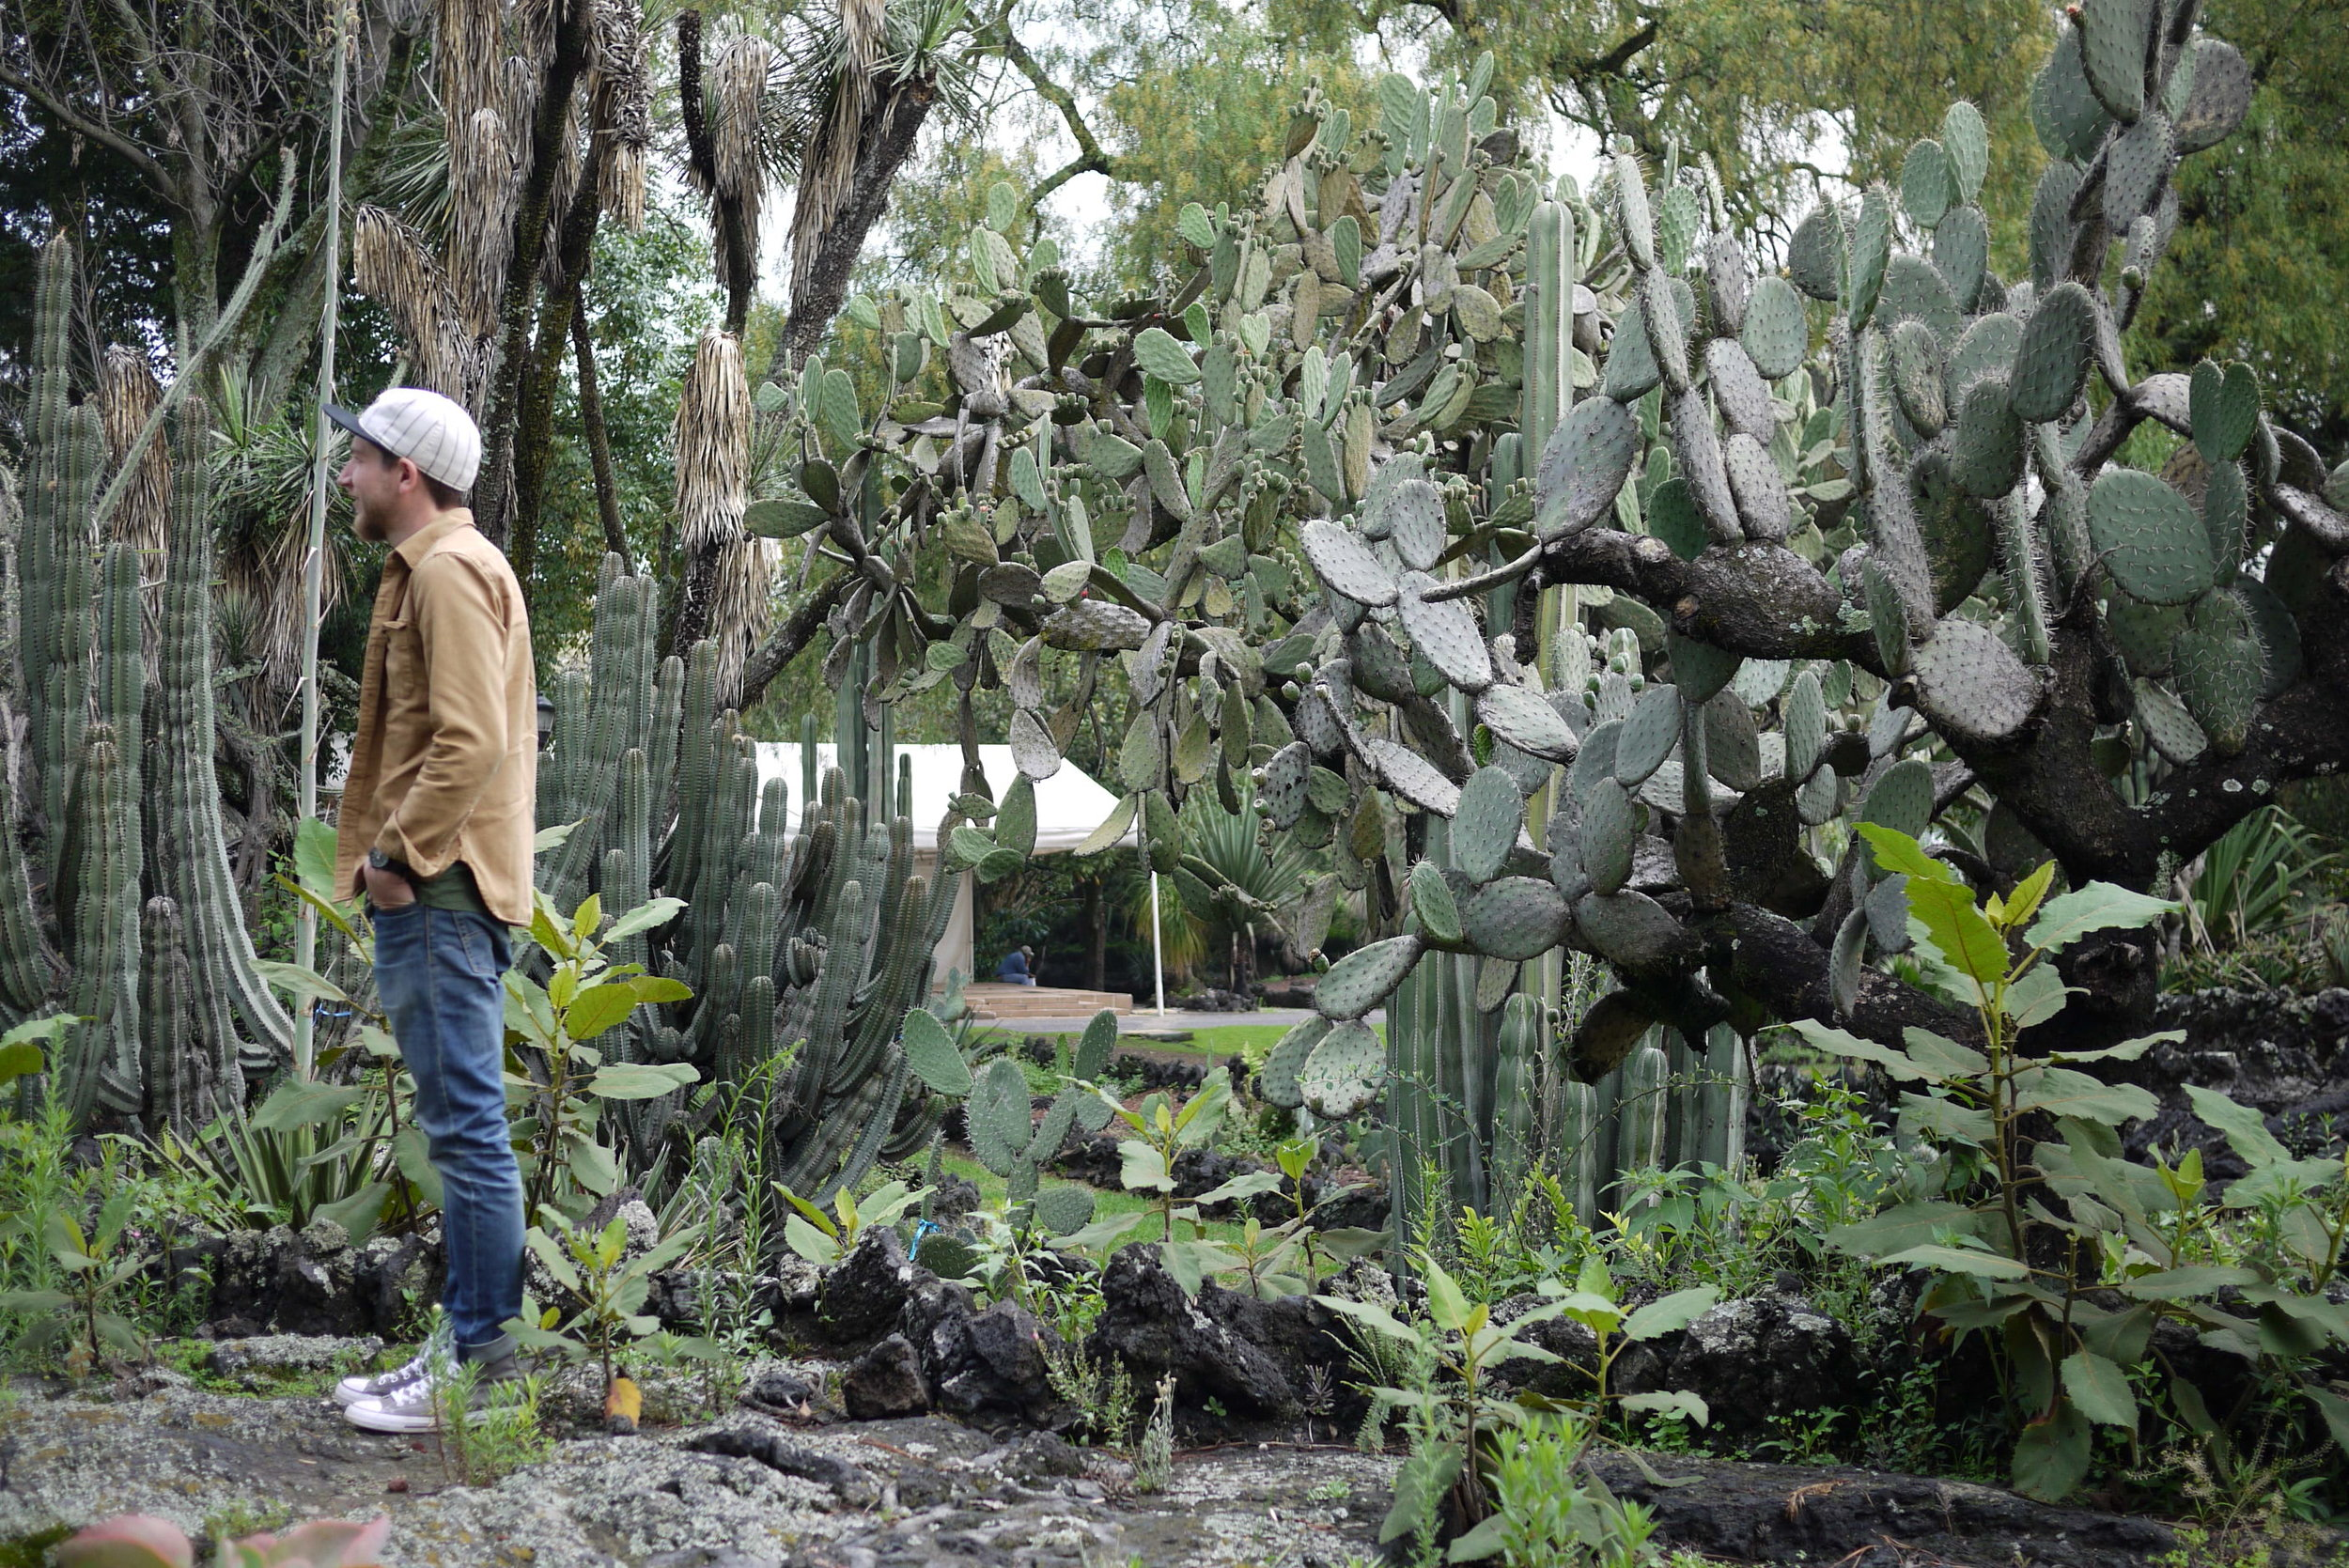 Tyler among the Cacti, for scale.